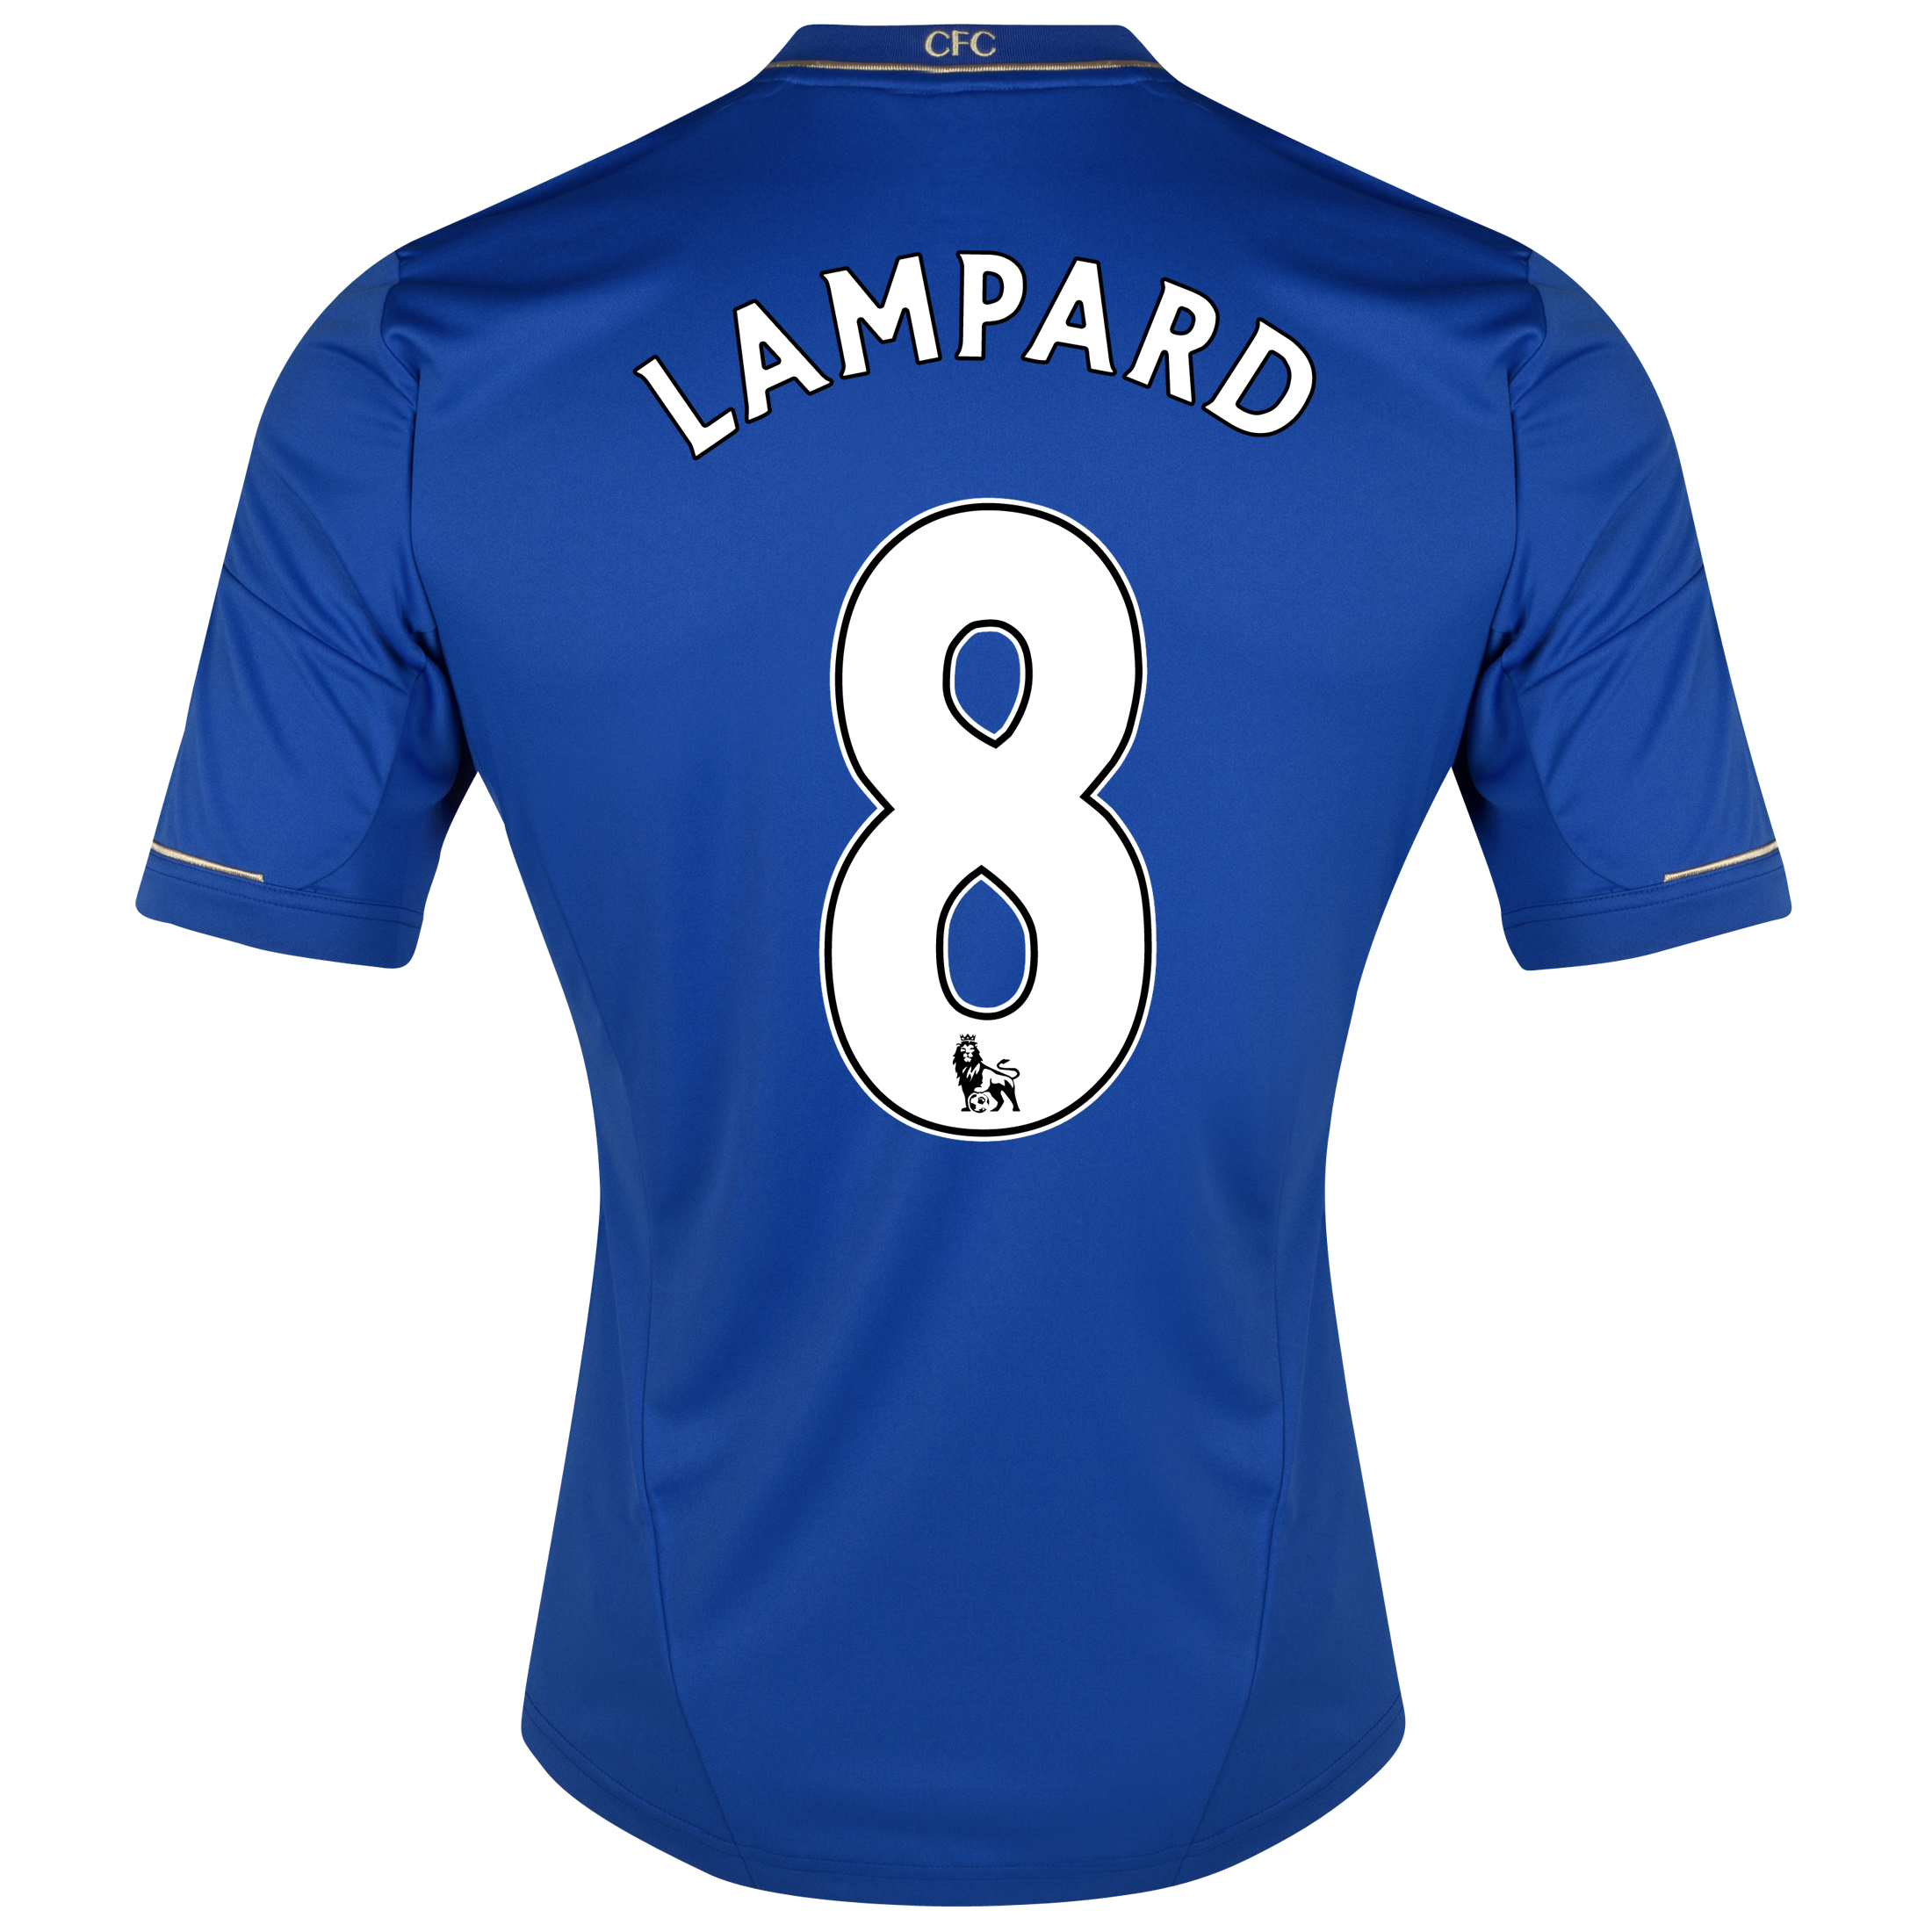 Chelsea Home Shirt 2012/13 with Lampard 8 printing